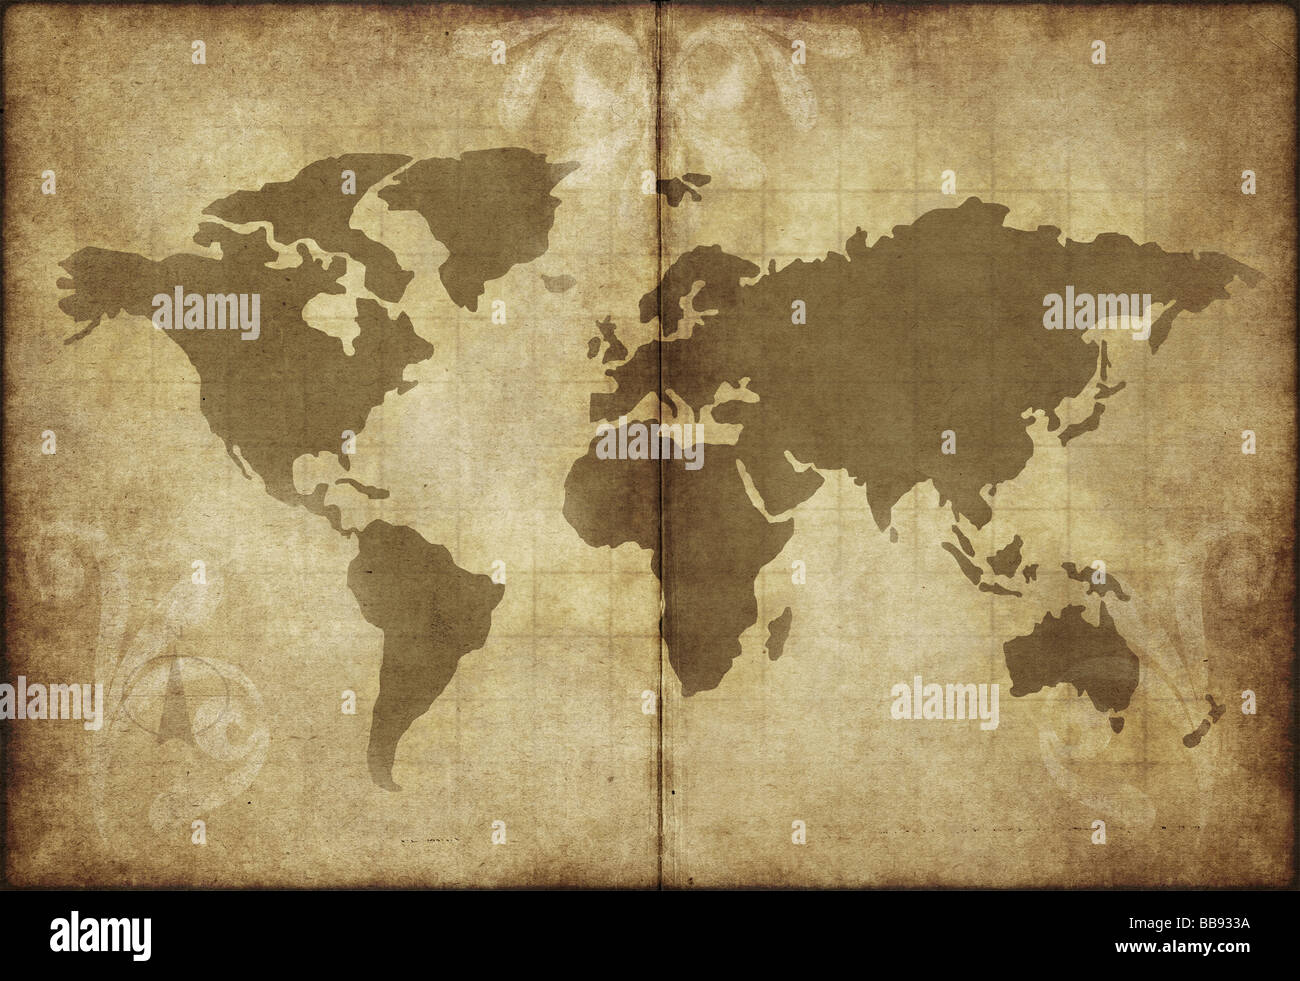 great image of old and worn parchment with world map Stock Photo